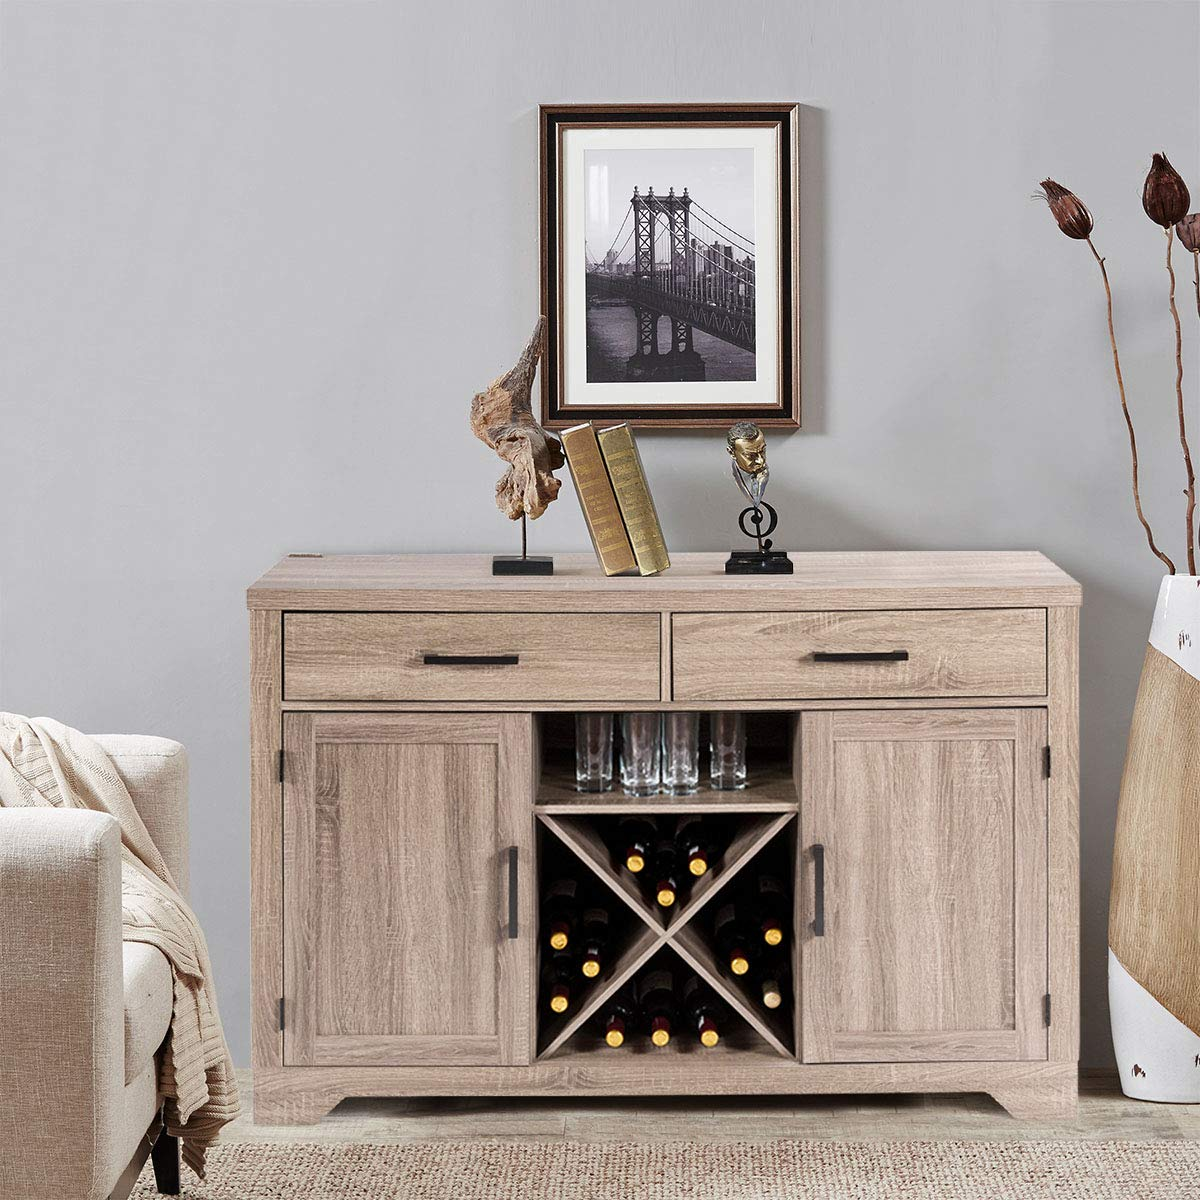 Giantex Buffet Cabinet Sideboard with Two Drawers Two Cabinets One Shelf and 4 Bottle Wine Rack Dining Room Home Furniture Console Storage Cabinet, Natural by Giantex (Image #2)